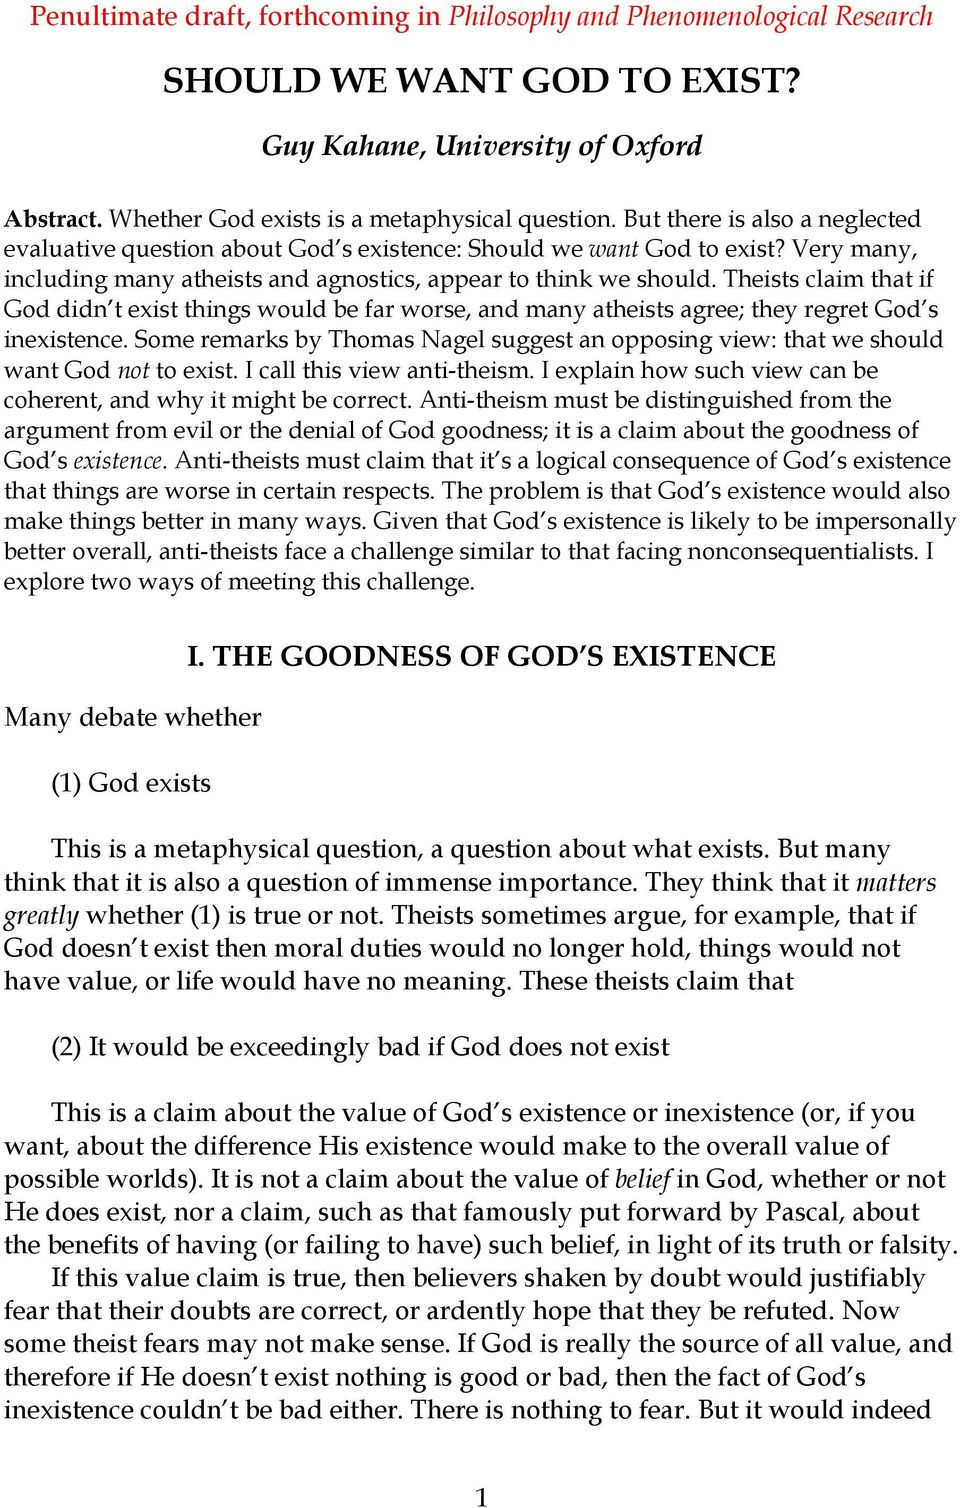 Theists claim that if God didn t exist things would be far worse, and many atheists agree; they regret God s inexistence.